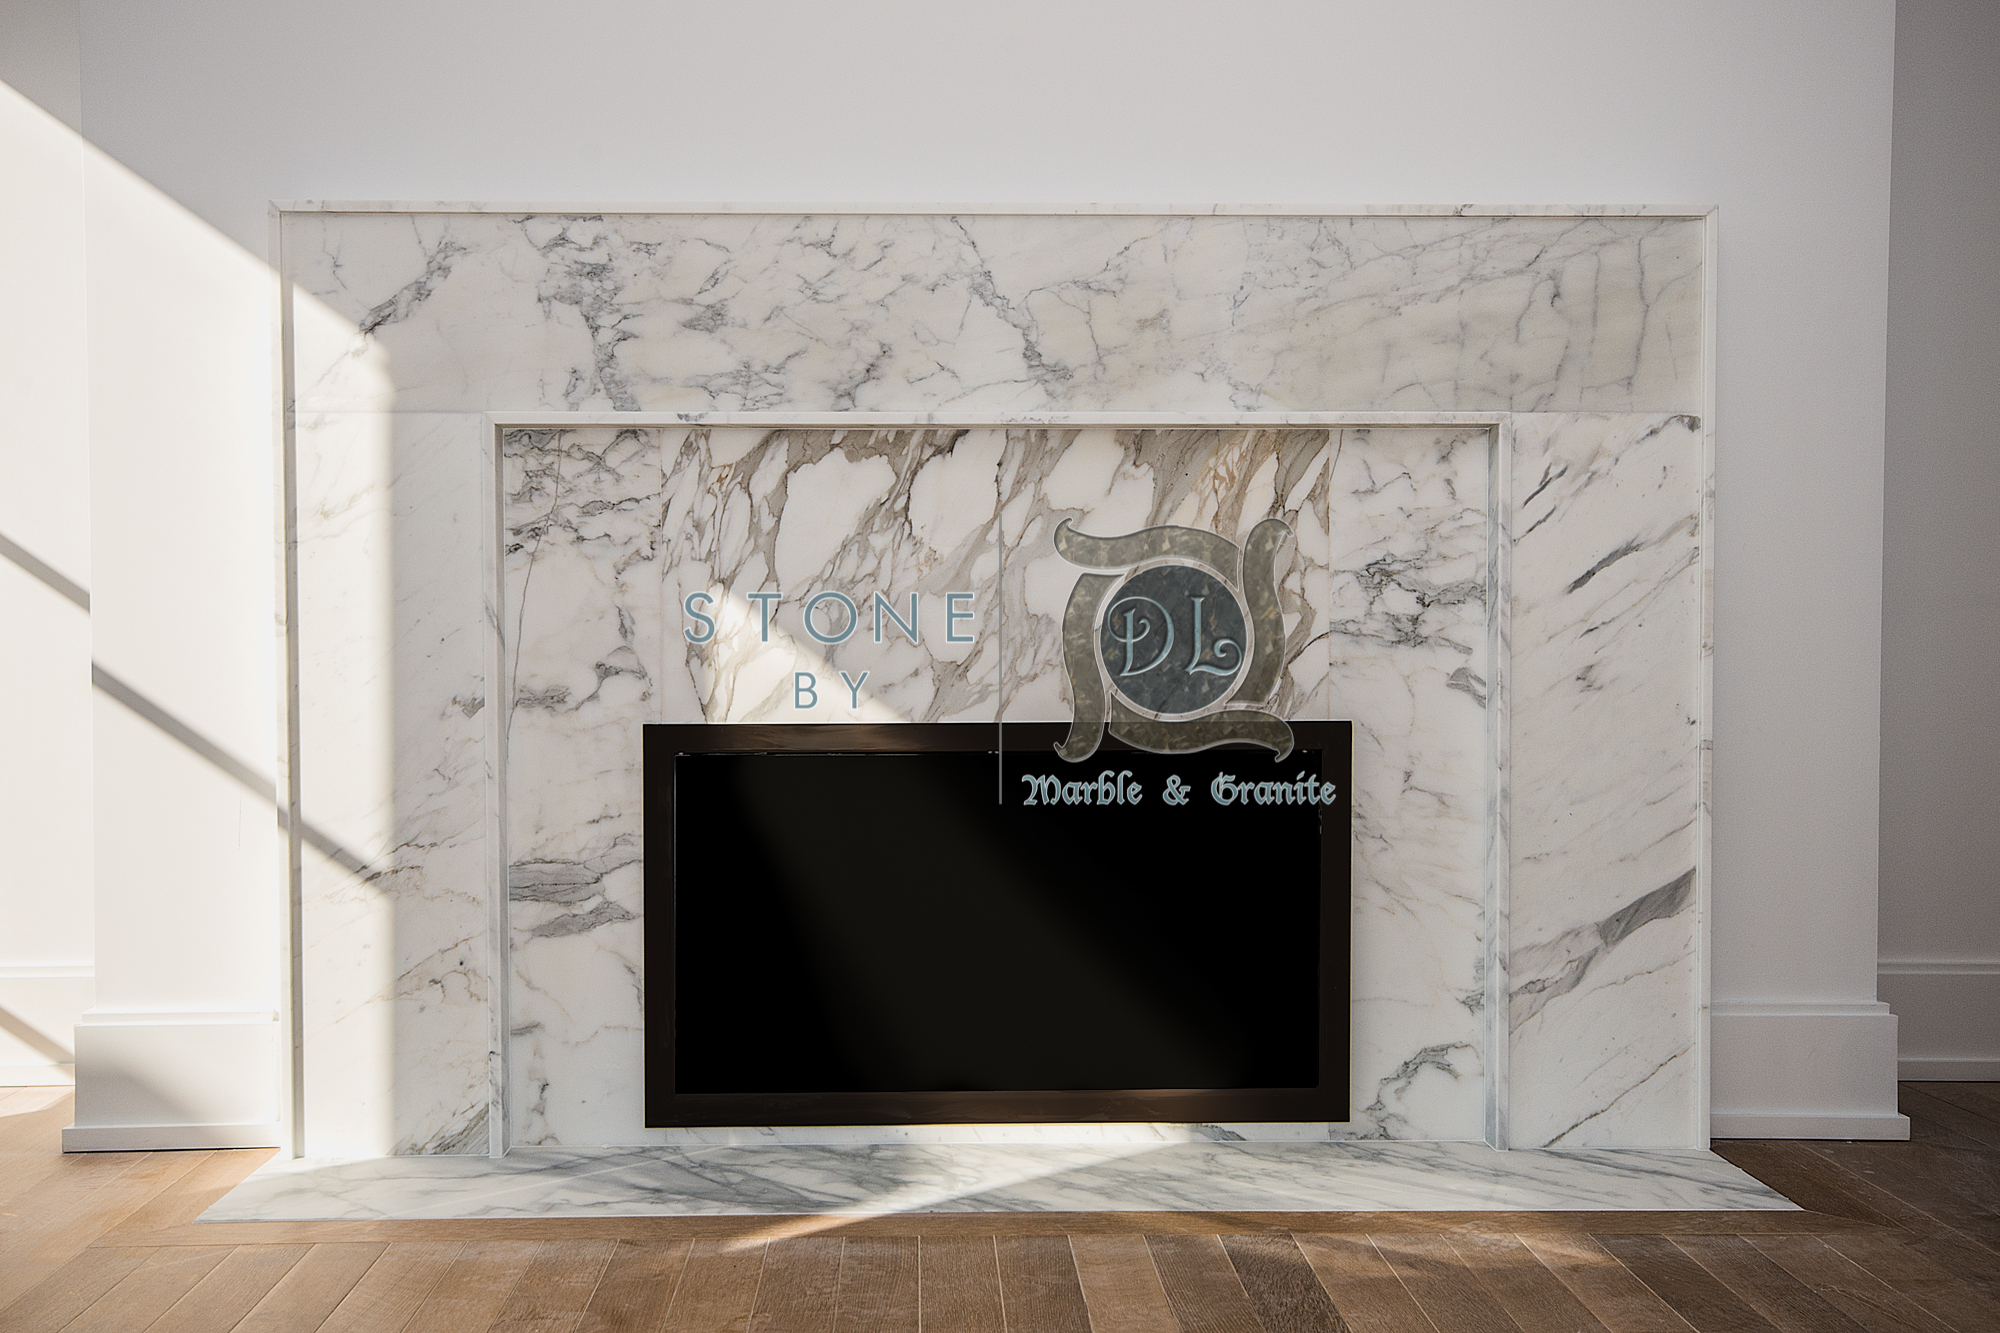 DSC_8032-- Stone by DL Marble and Granite Inc. Walker Tower.jpg